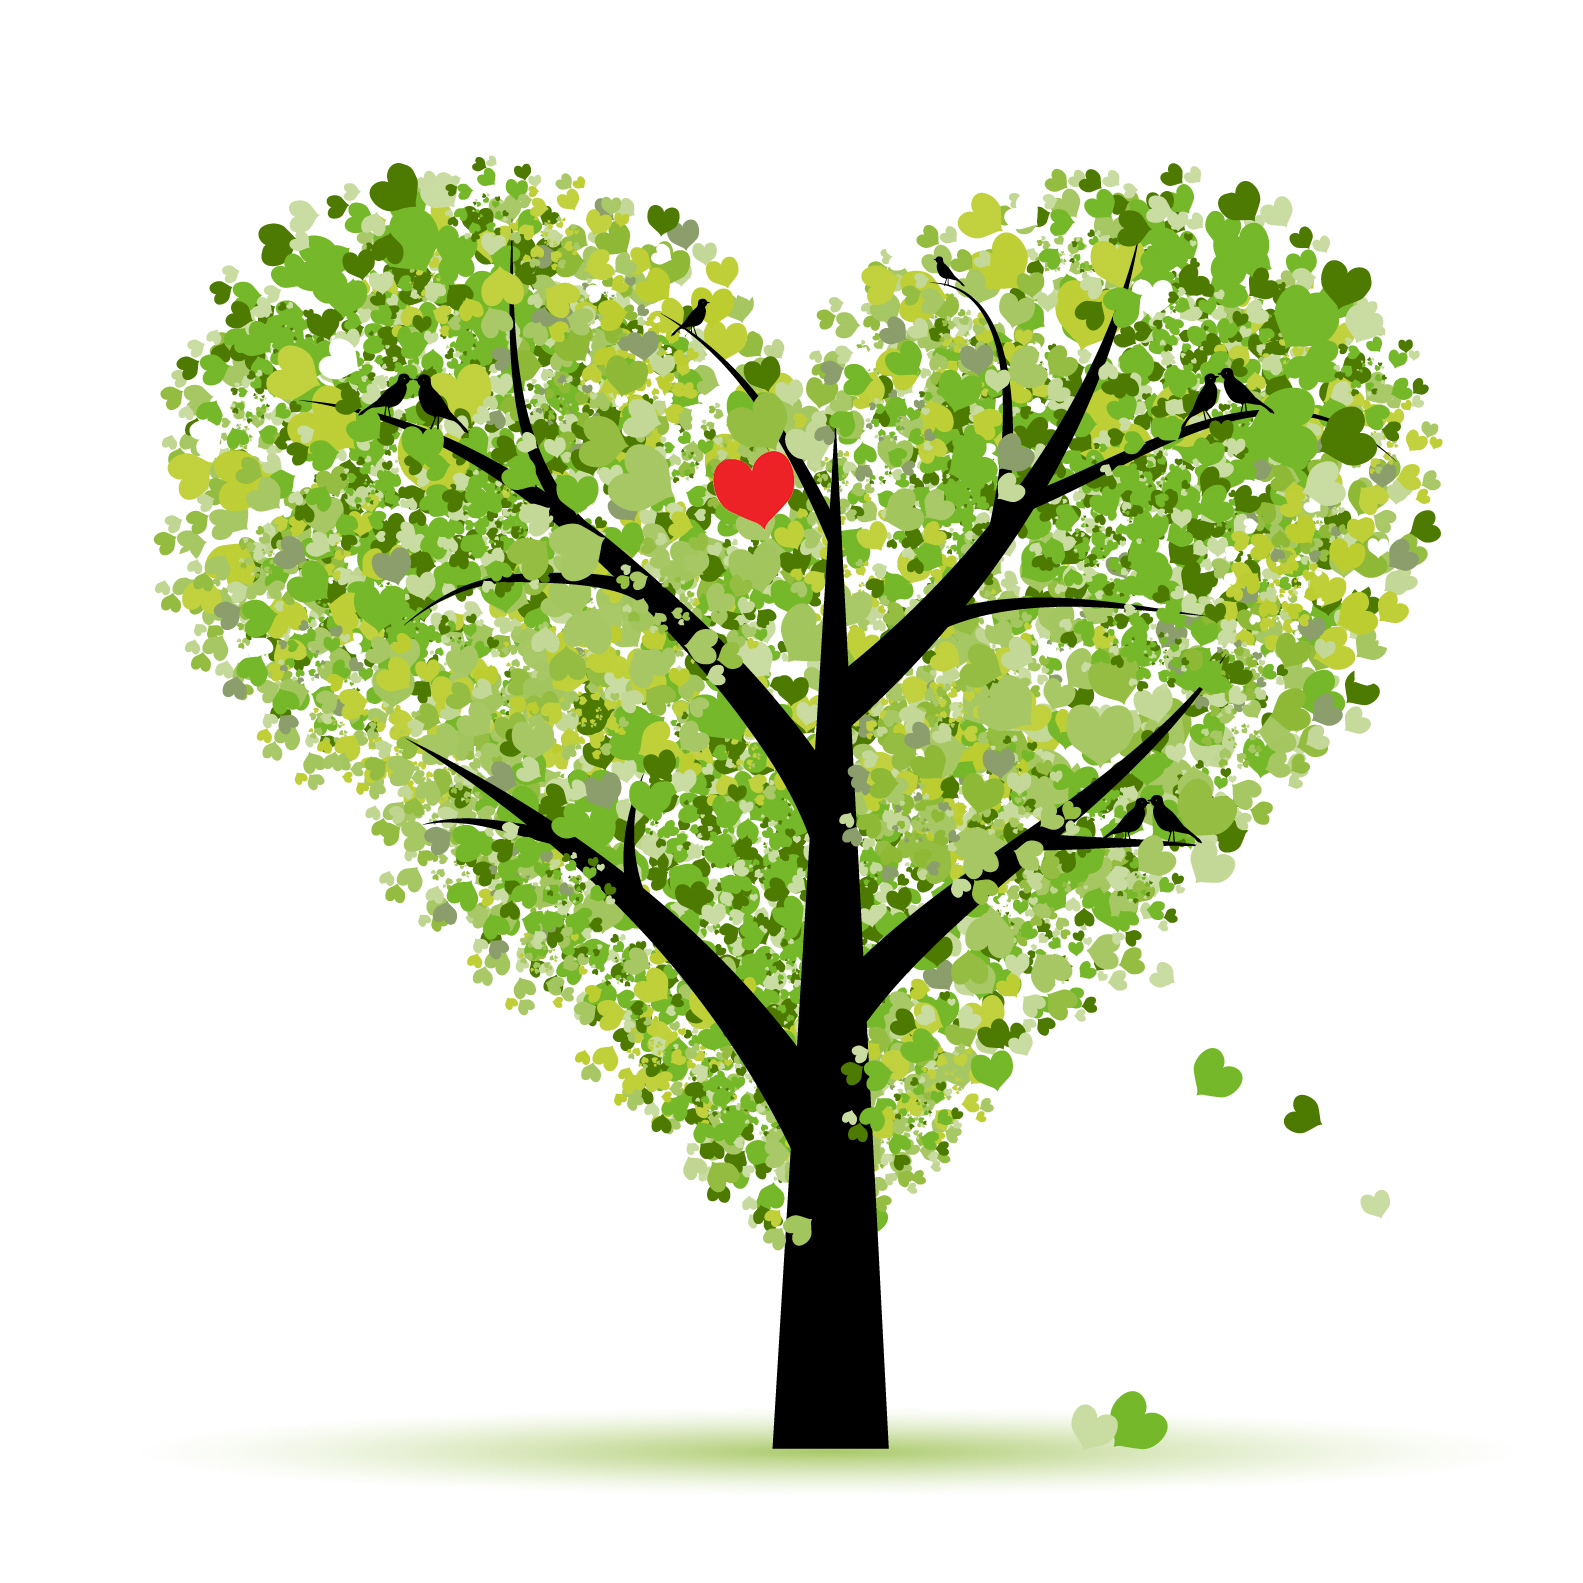 Clipart tree heart vector freeuse stock Free Tree Heart Cliparts, Download Free Clip Art, Free Clip Art on ... vector freeuse stock